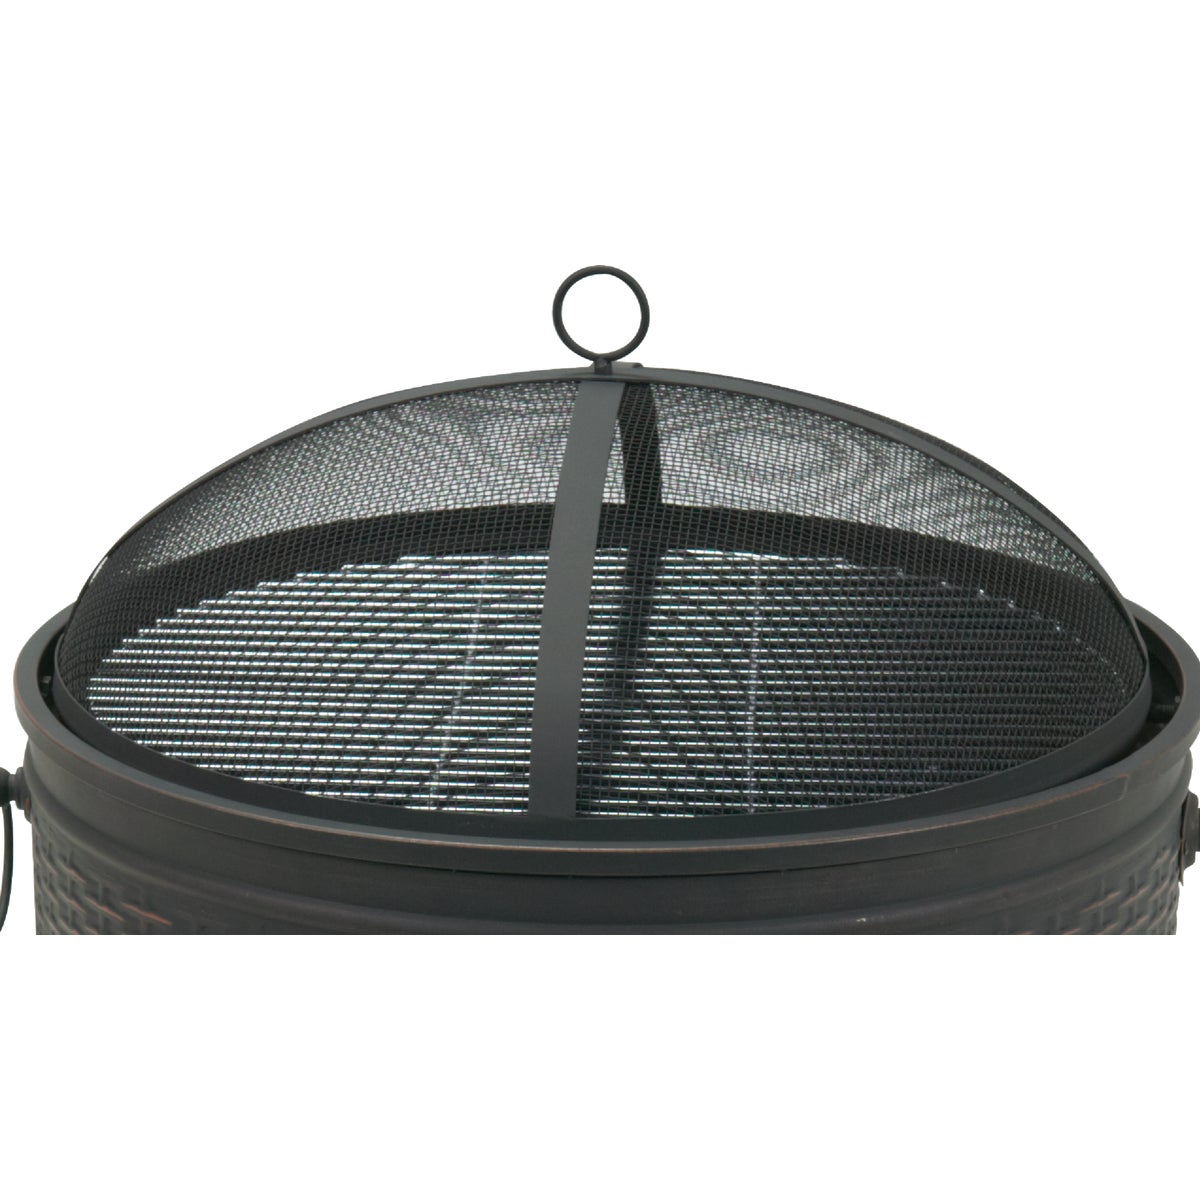 22.4X6.7 FIRE PIT COVER